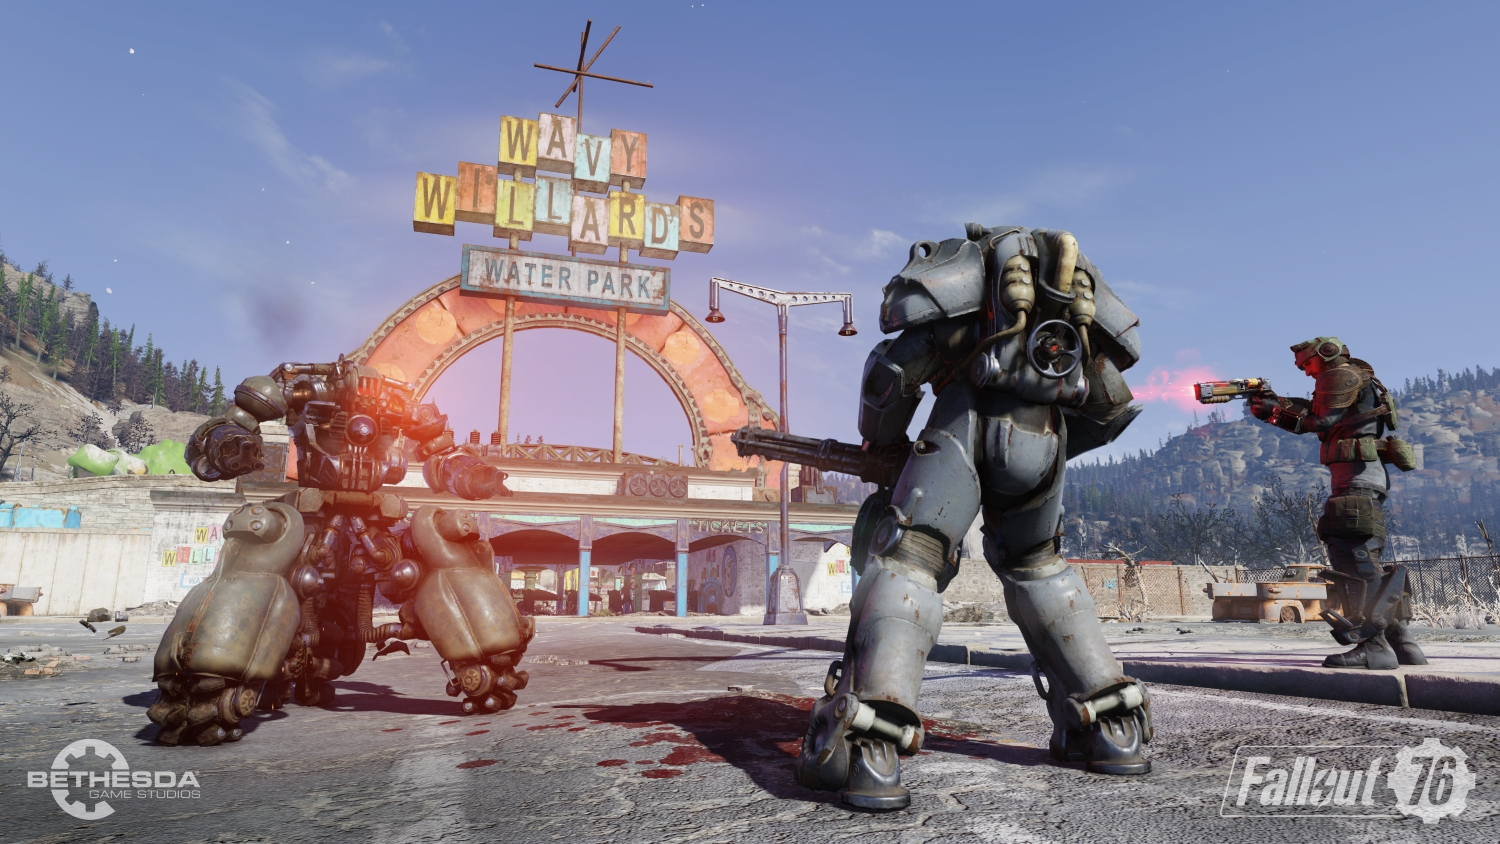 Fallout 76 - four hours is not enough time to get any power armour